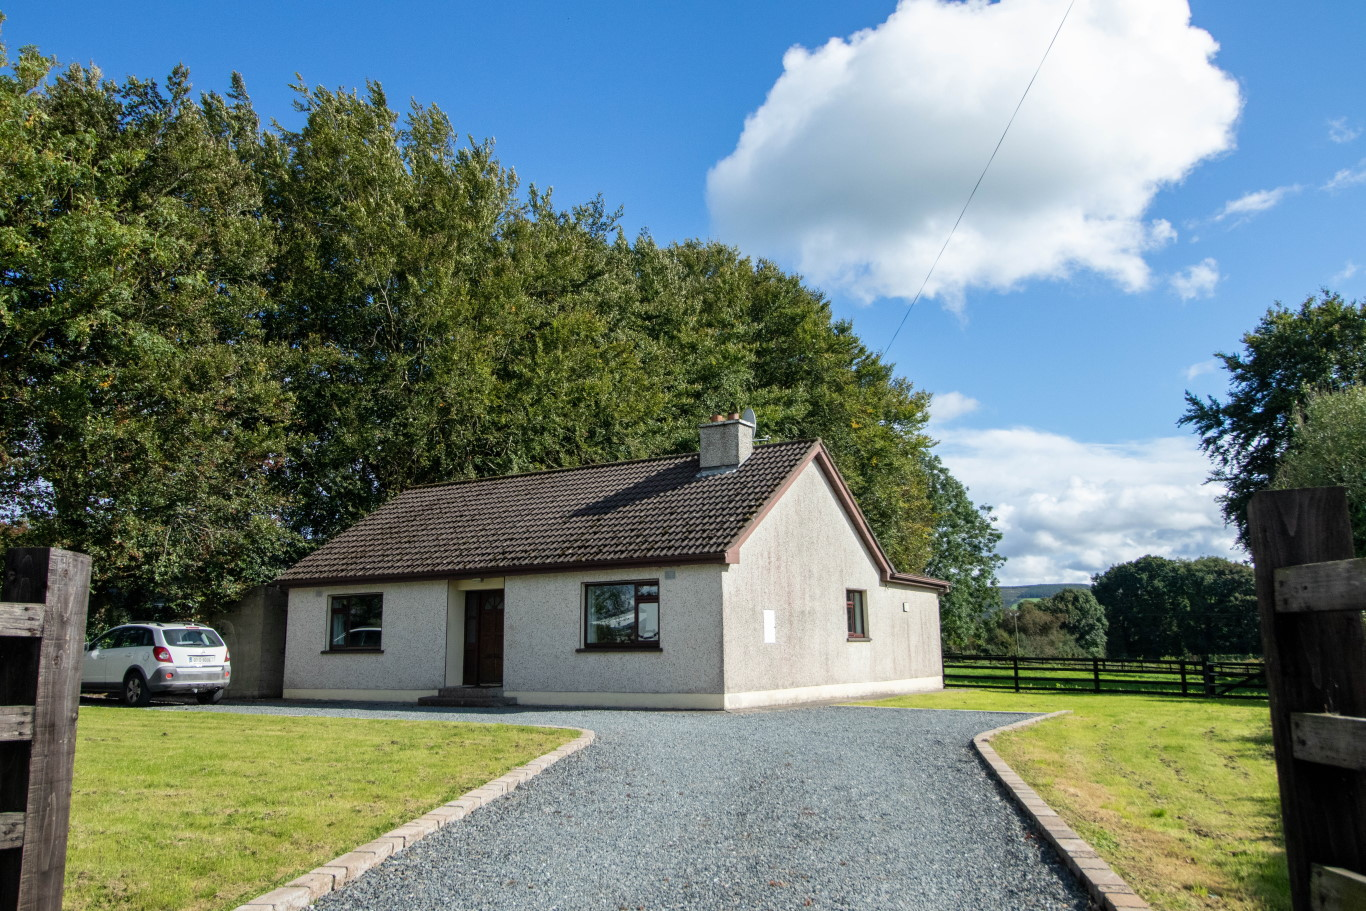 3 Bedroom House for Sale, Ballymore Eustace, Kildare